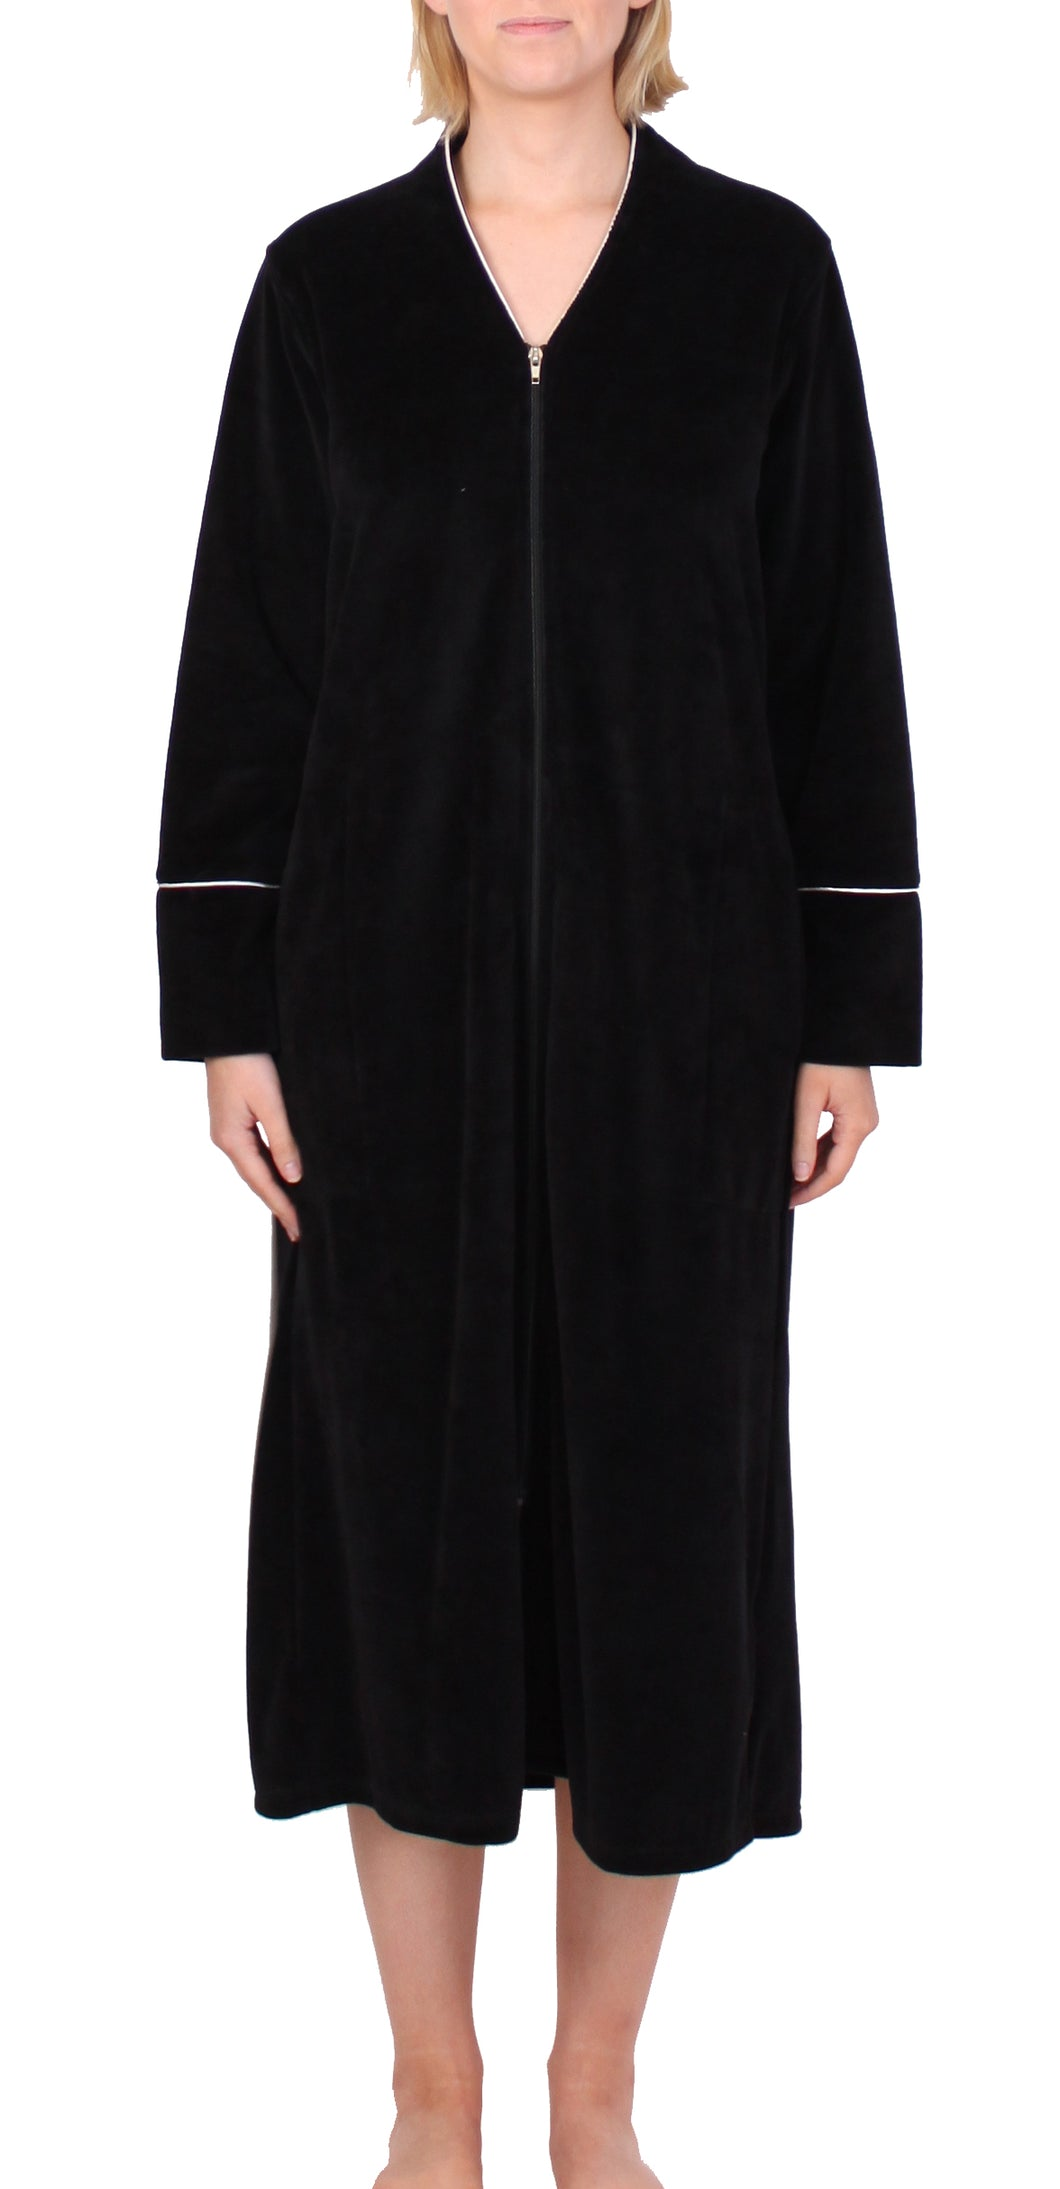 Velour Zip Robe Black - Y818